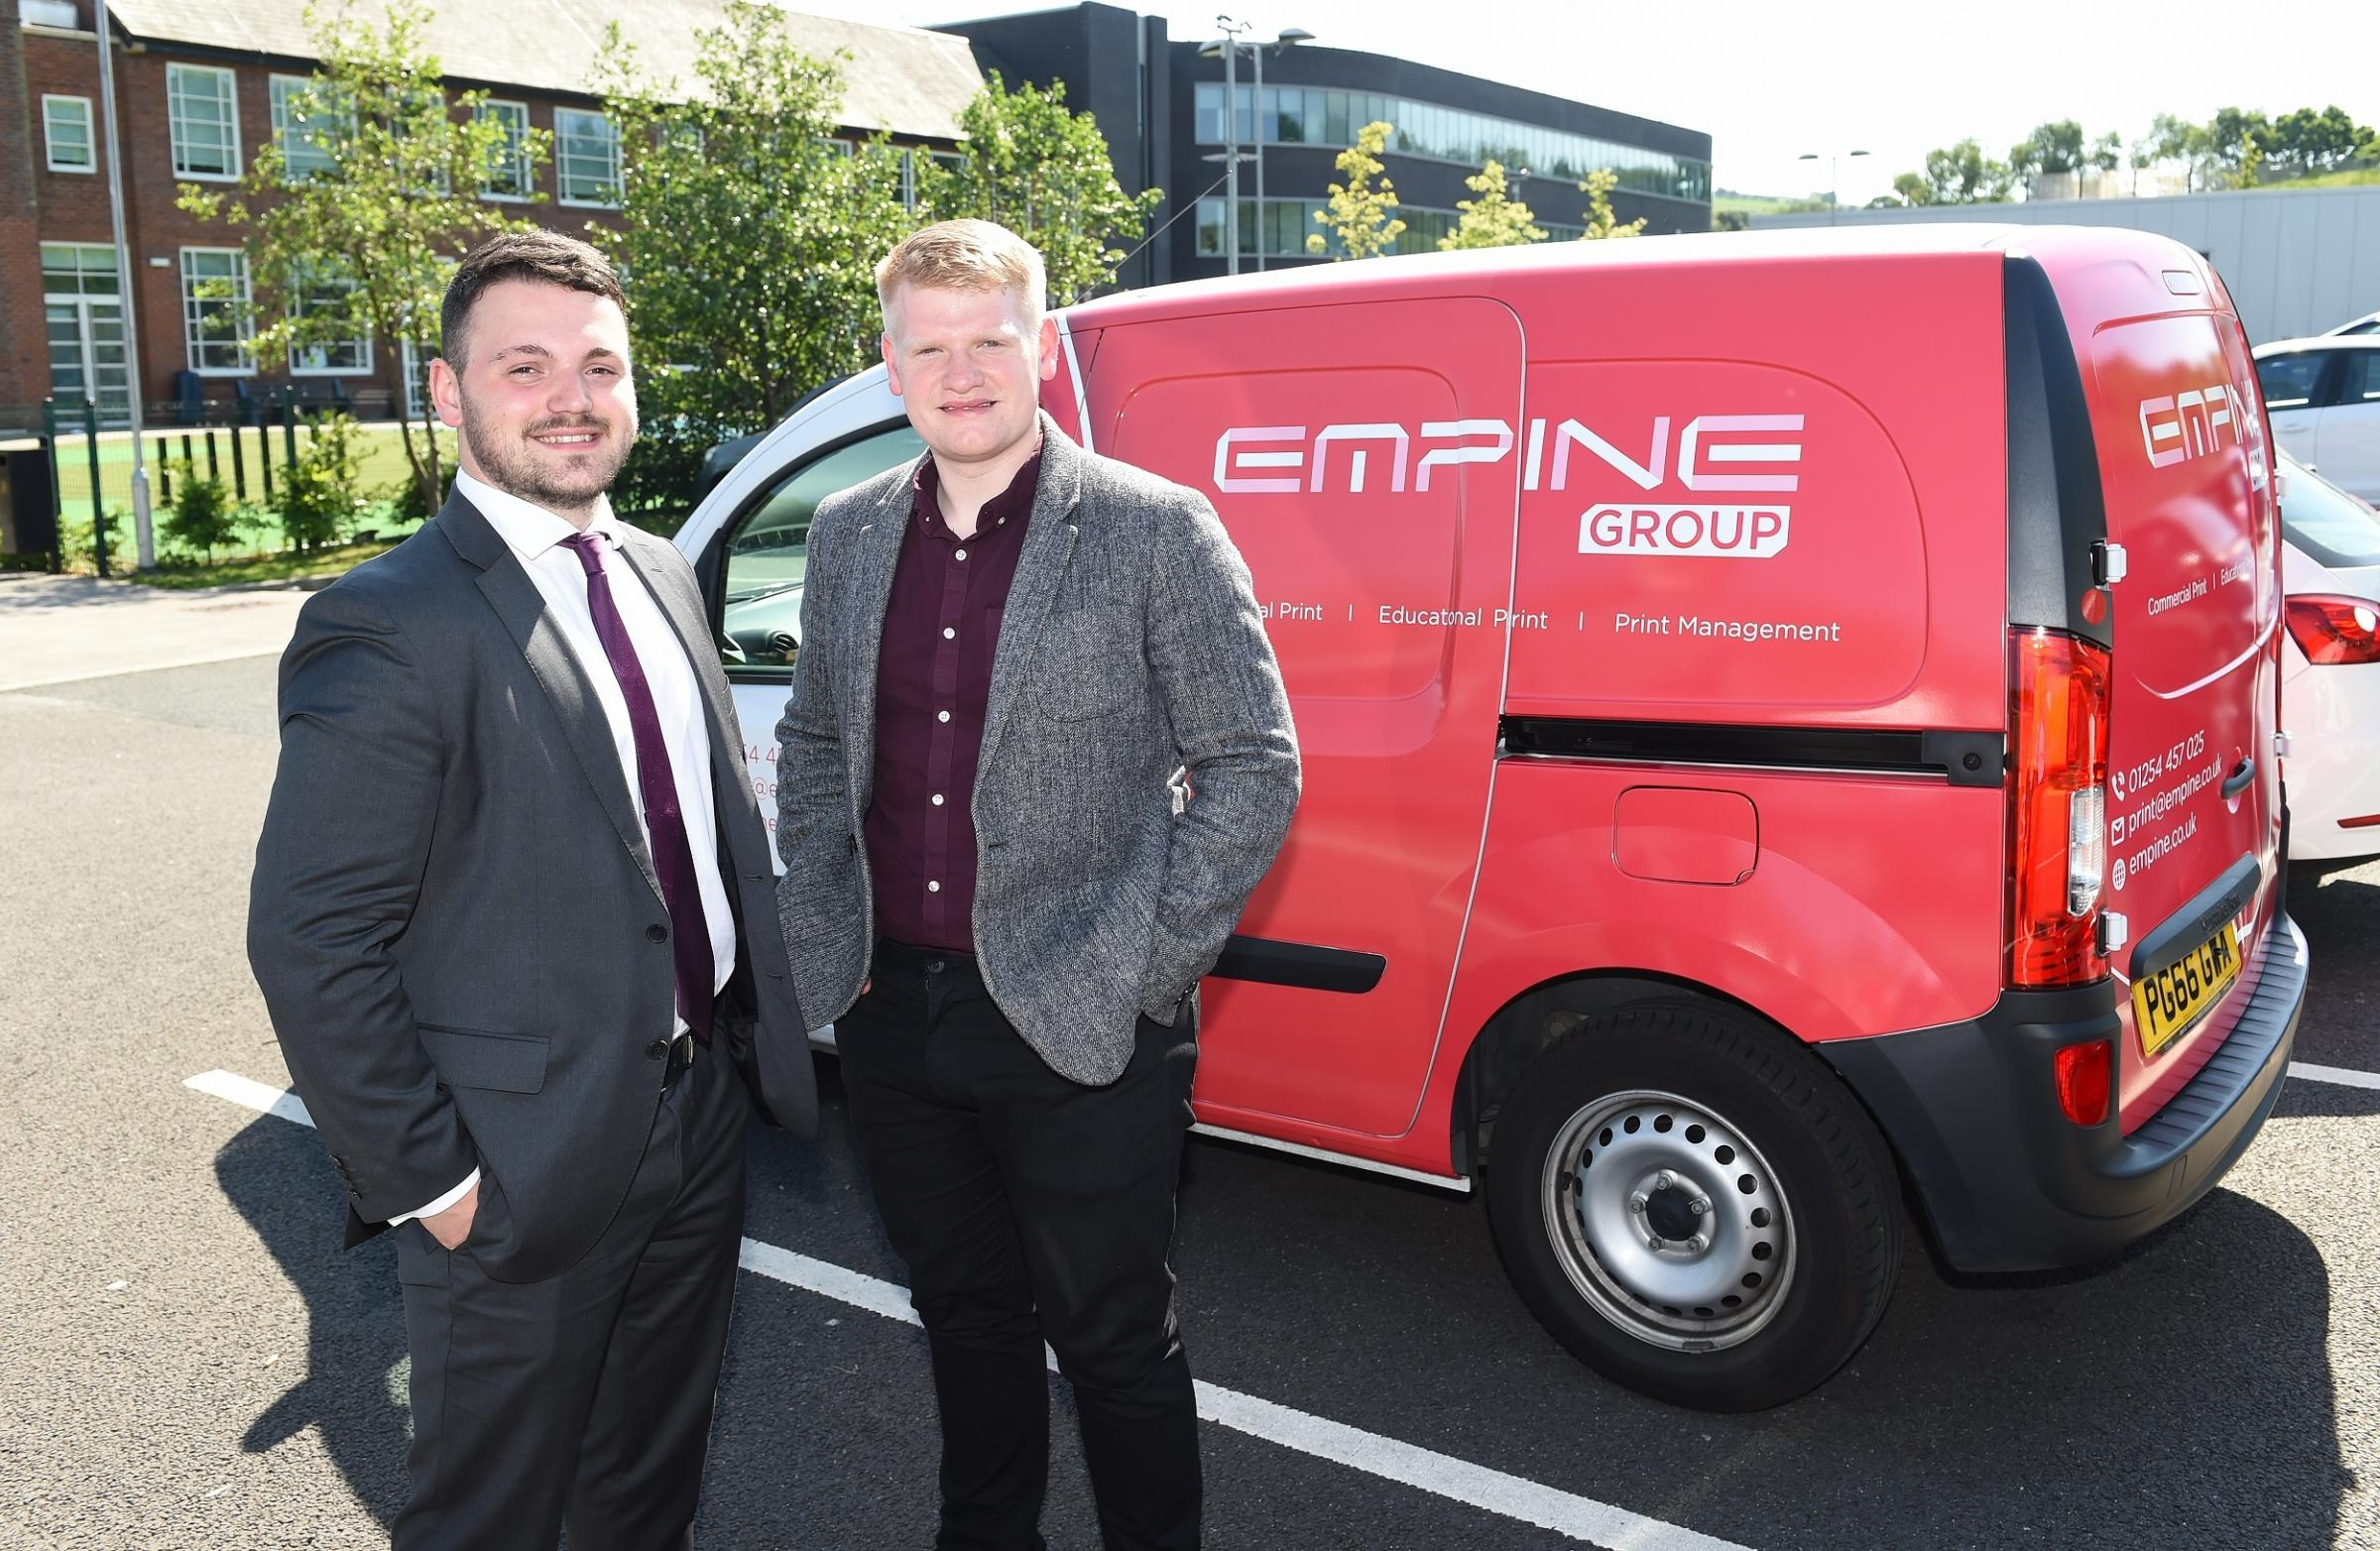 Anthony Taylor and Jacob Knowles of Empine Group, Darwen